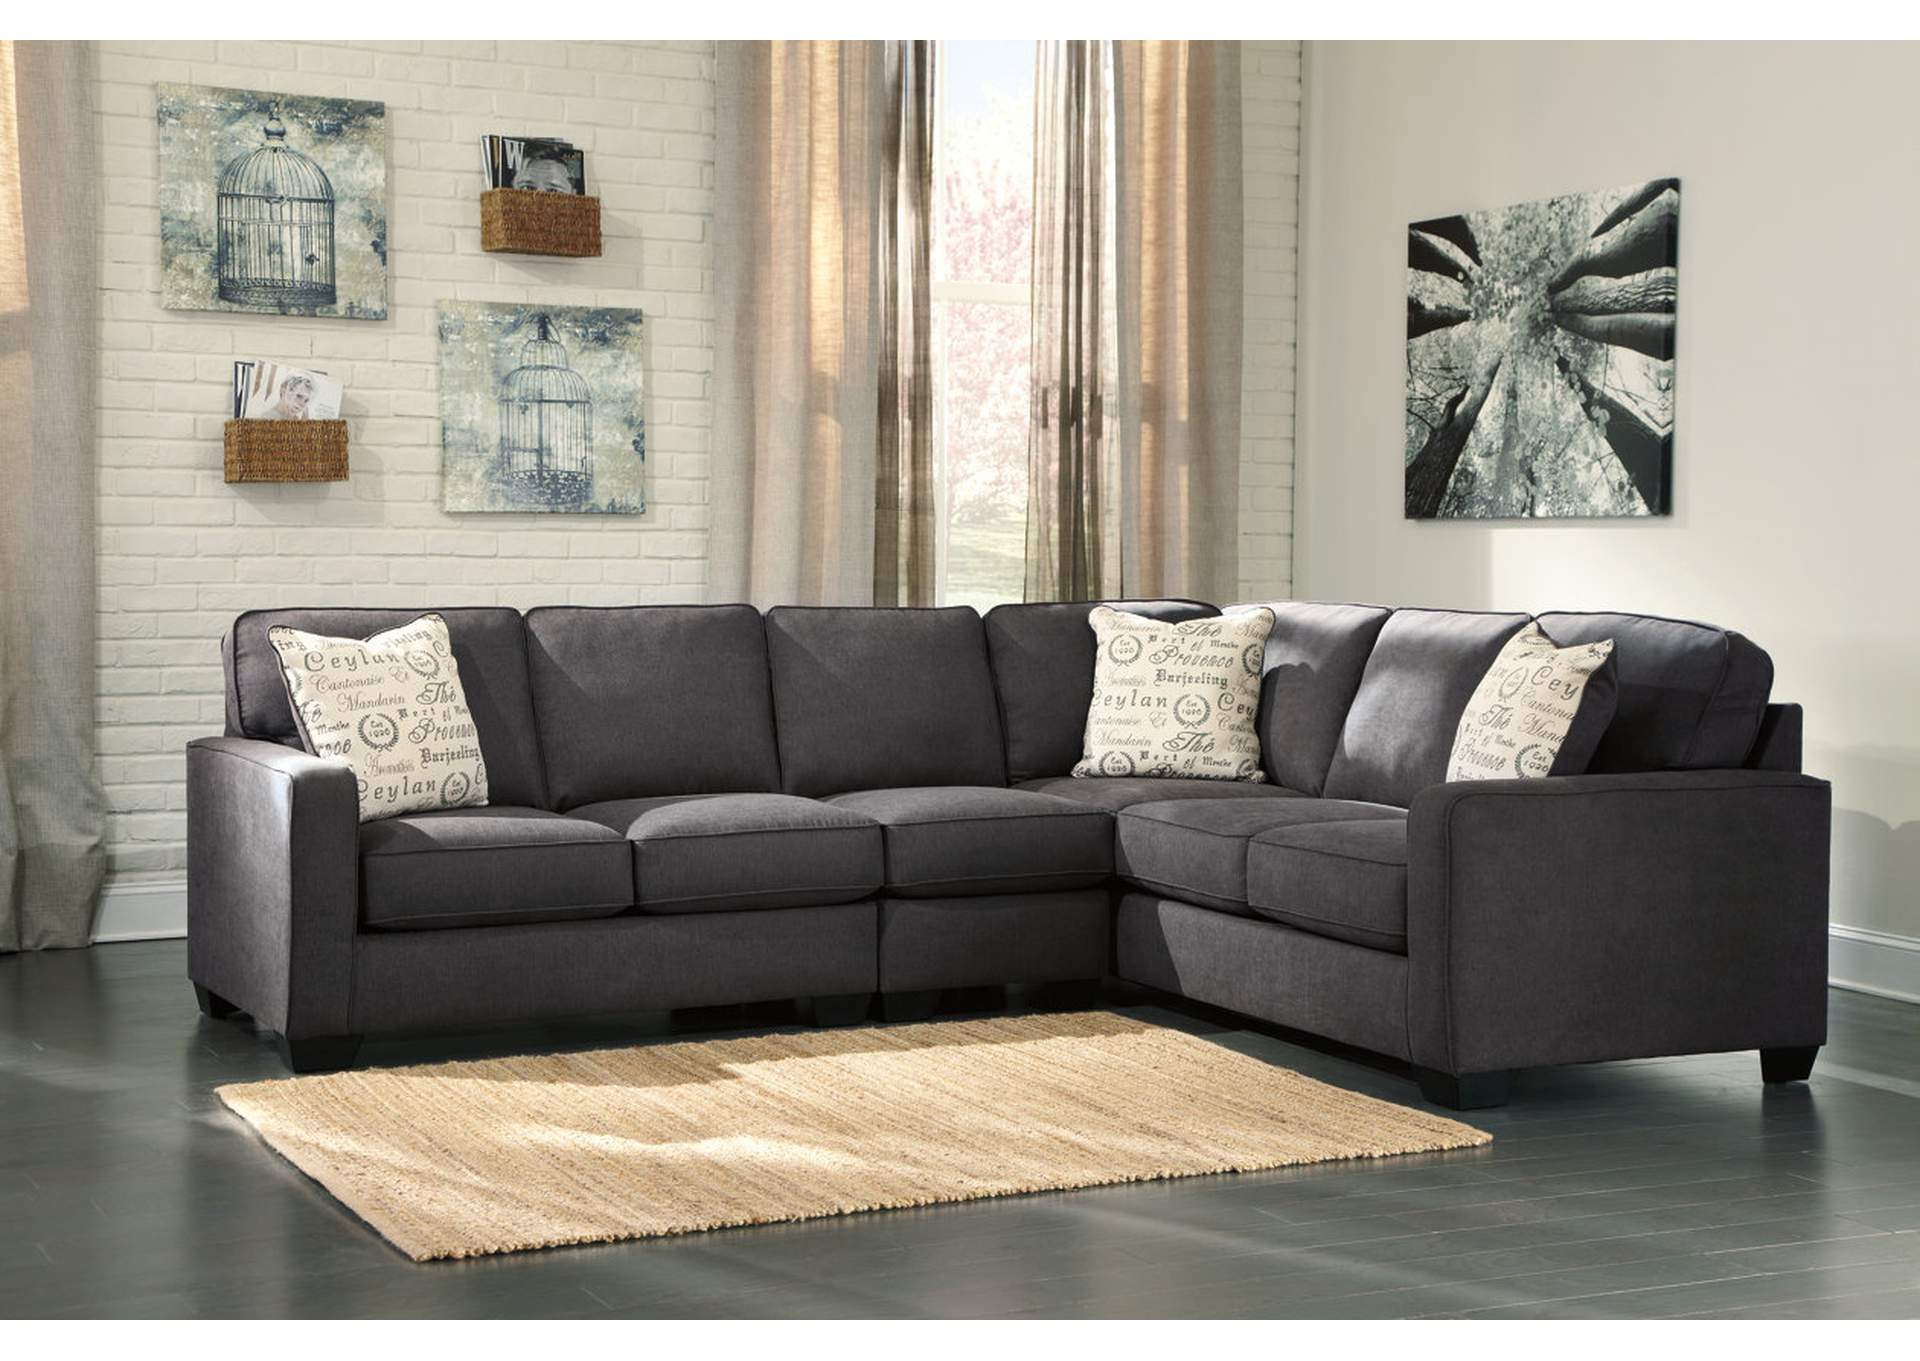 Alenya Right Facing Charcoal Extended Sectional,Signature Design By Ashley